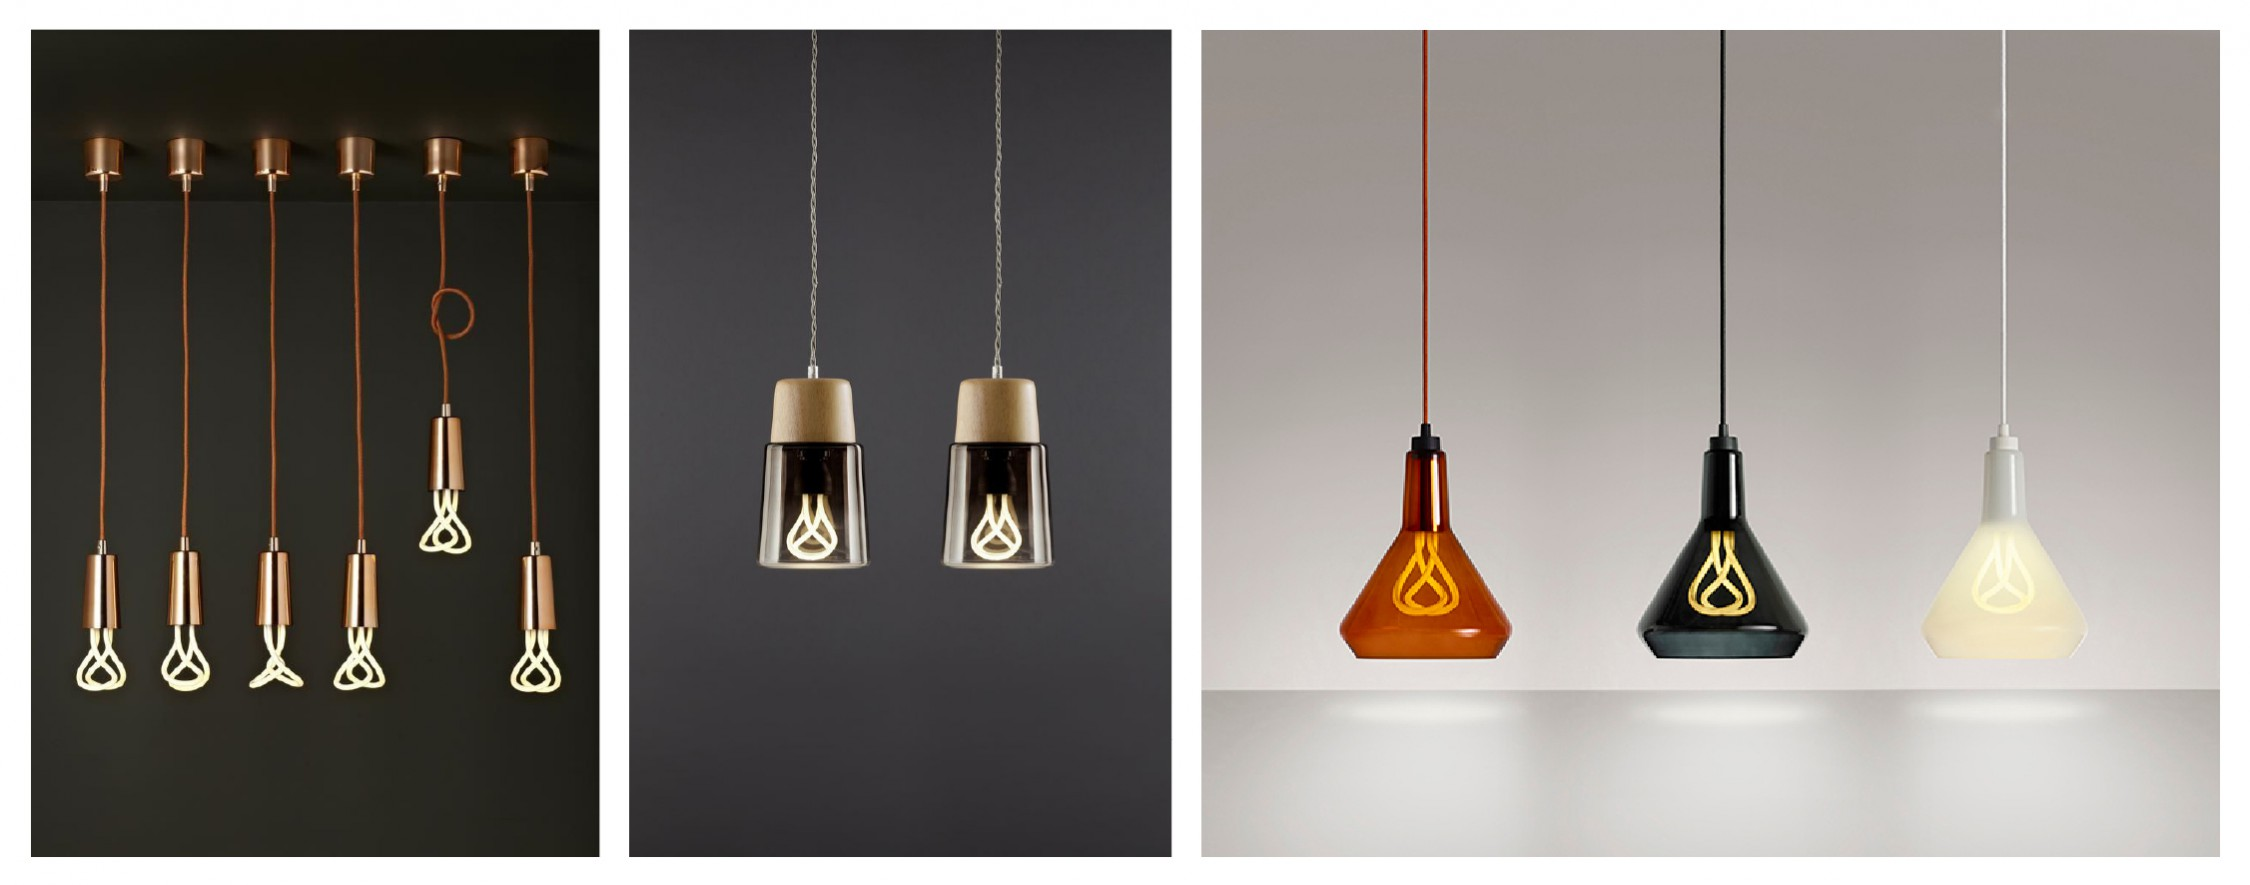 The power of natural lighting: Plumen are the creators of the world's first designer low energy lamp. Inhabitat (2015) Louvre Museum, Abu Dhabi [Online Image]. Available from: http://inhabitat.com/the-louvre-abu-dhabi-is-a-museum-that-is-its-own-work-of-art/ [Accessed 26/11/15].  Pinterest (2013) Buster and Punch cap [Online Image]. Available from: https://www.pinterest.com/pin/498492252475812713/ [Accessed 26/11/15].  Plumen (2015) Drop Cap Pendant Set – Copper [Online Image]. Available from: http://ukshop.plumen.com/products/copper-lighting-drop-cap-pendant-e27 [Accessed 26/11/15].  Plumen (2015) Drop Top Shade [Online Image]. Available from: http://plumen.com/2014/07/introducing-the-plumen-drop-top-lamp-shade/ [Accessed 26/11/15].